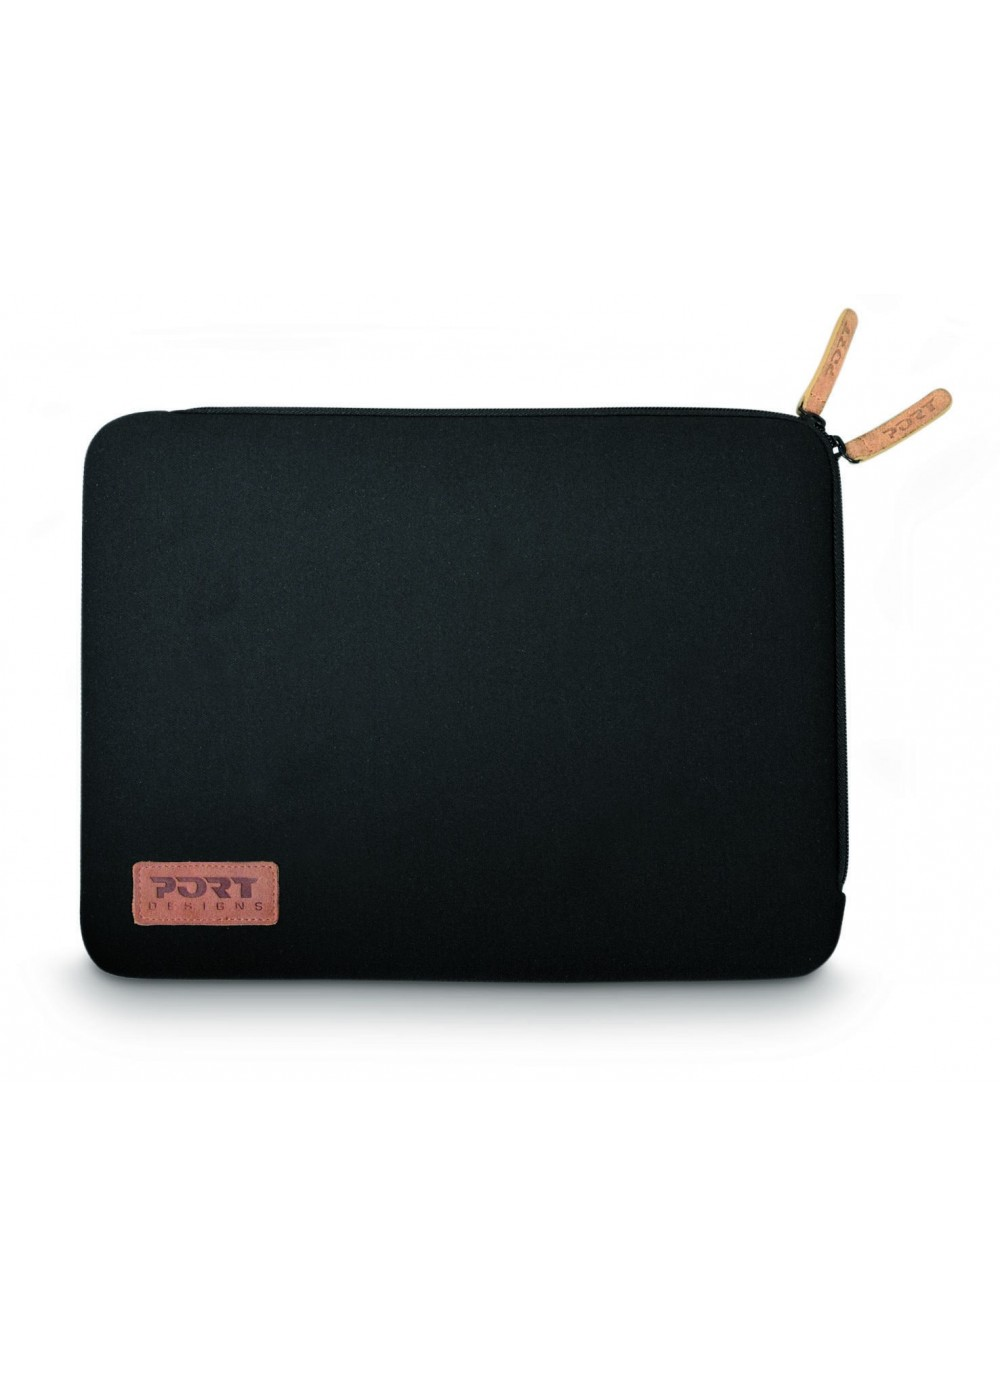 2a46f71acbec A second skin for your laptop